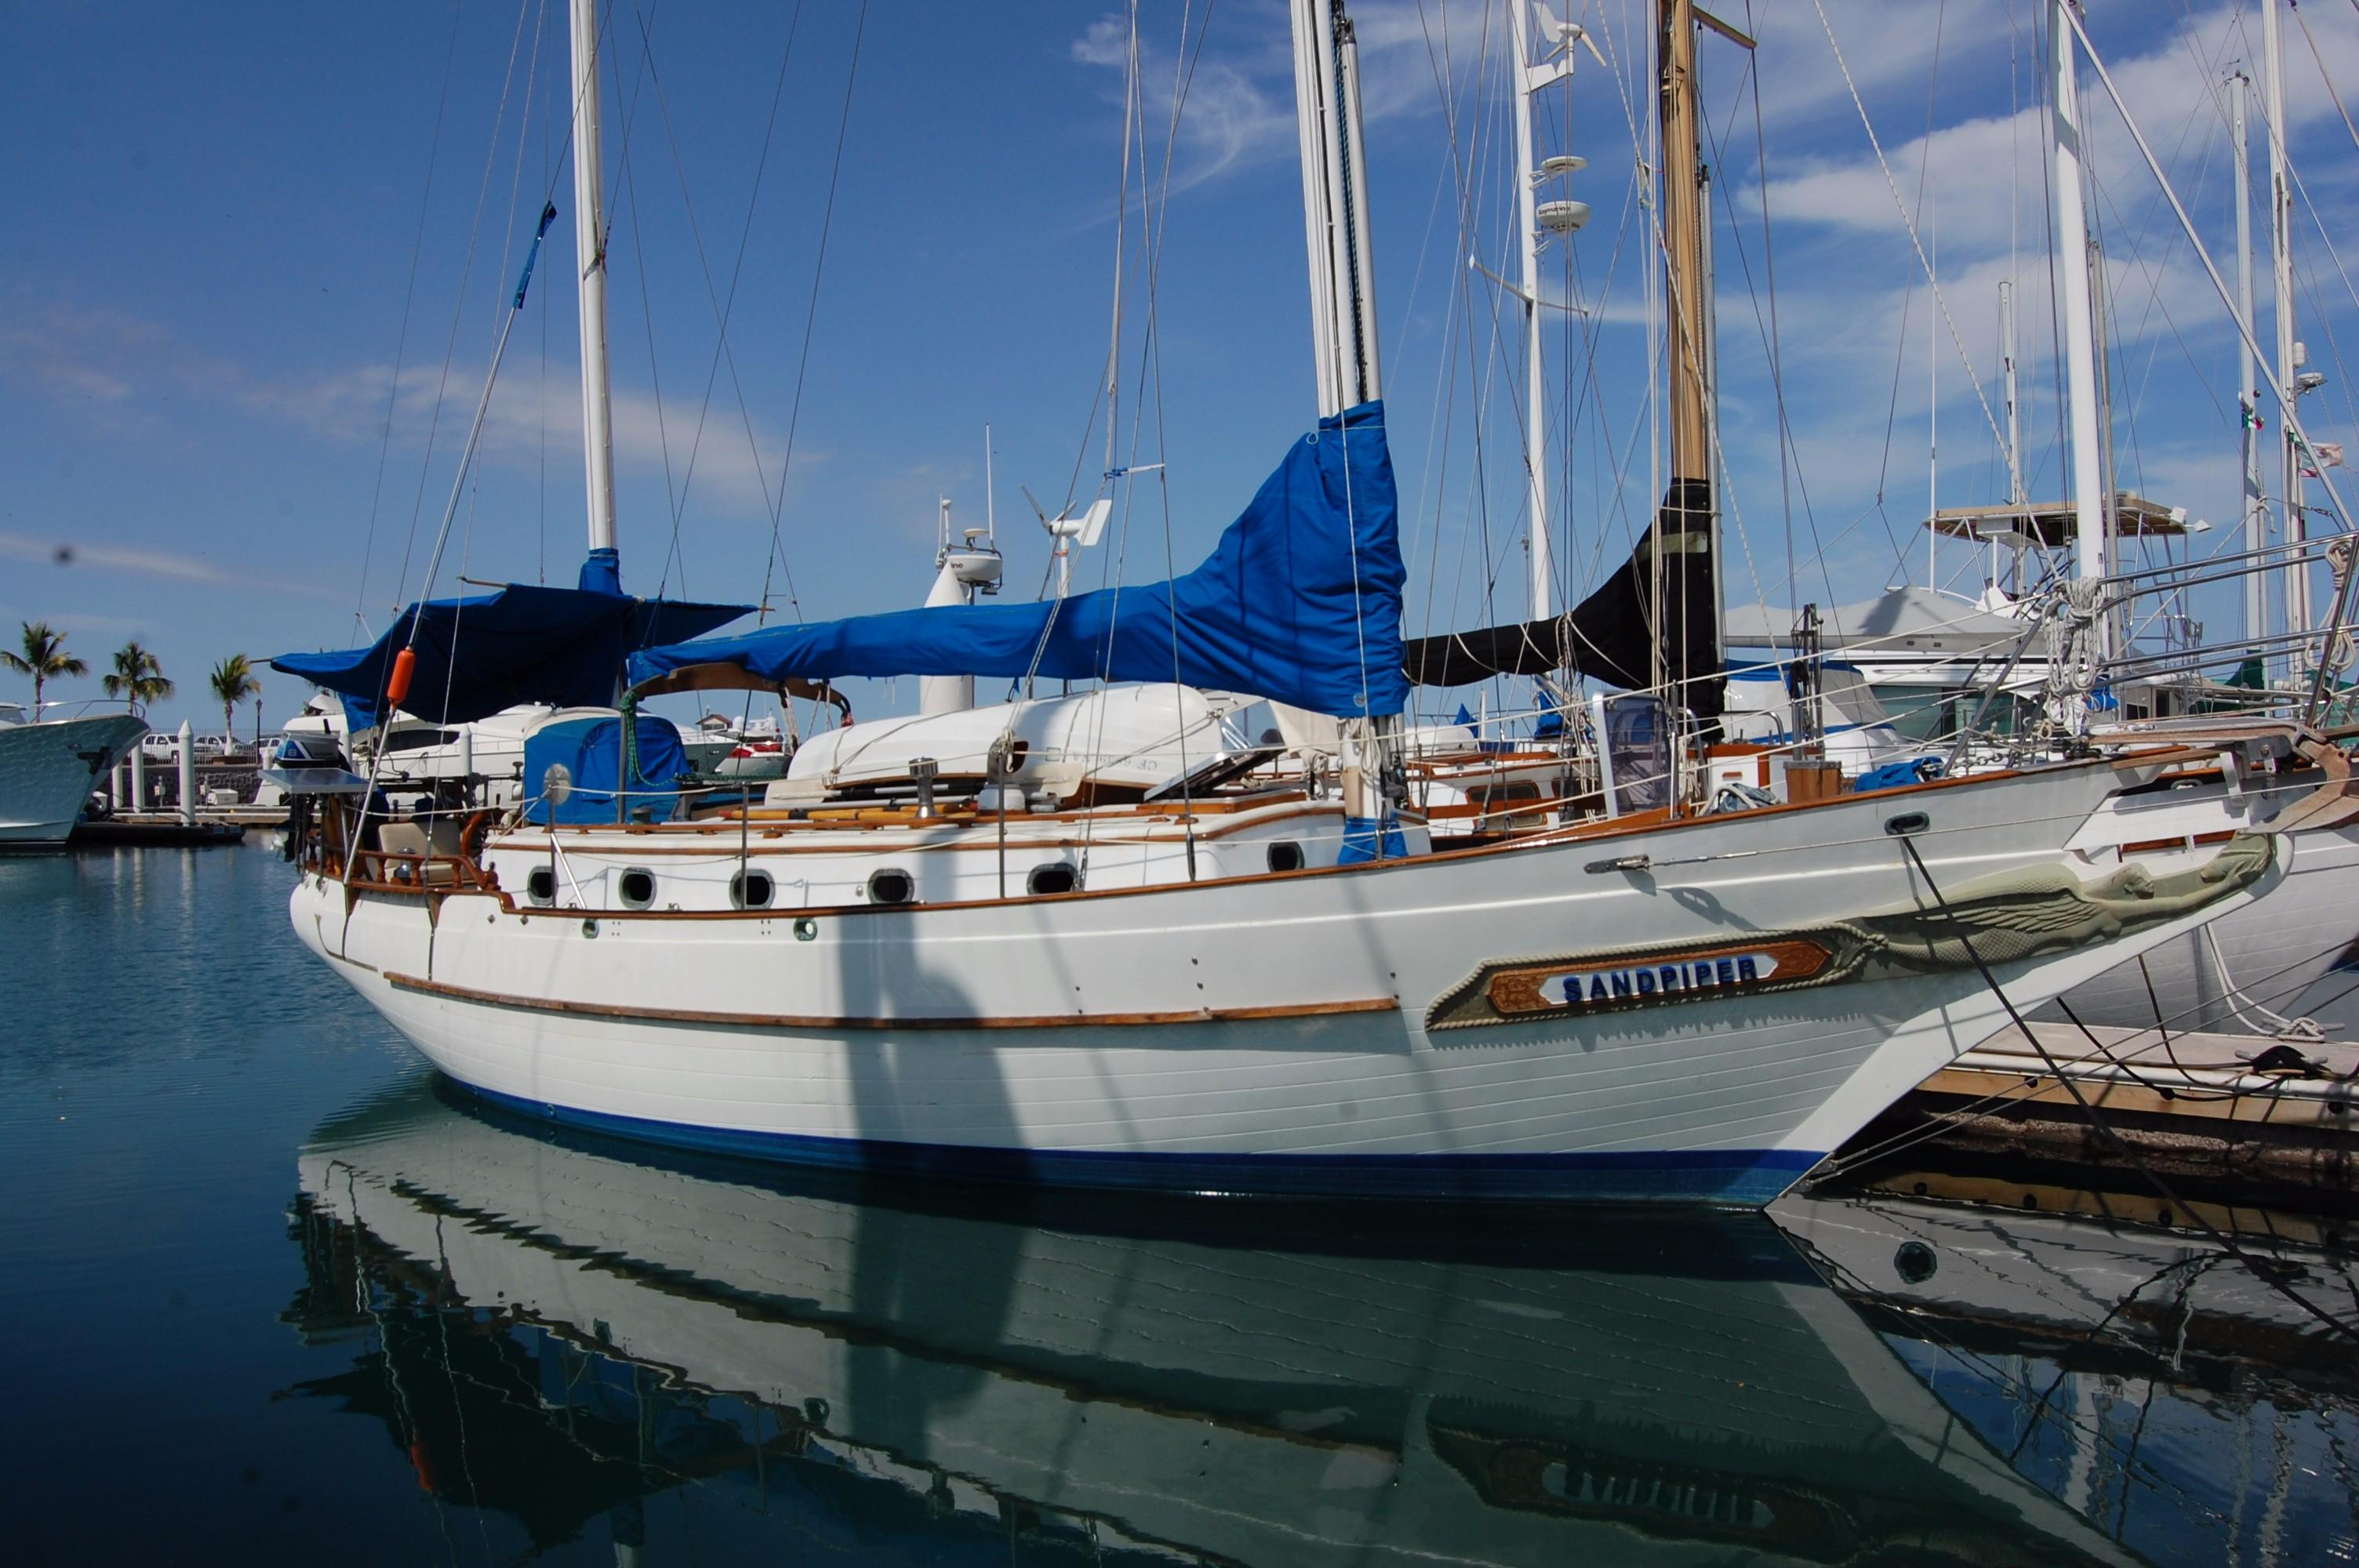 42' Ta Chiao CT-42 Aft Cockpit Ketch+Boat for sale!